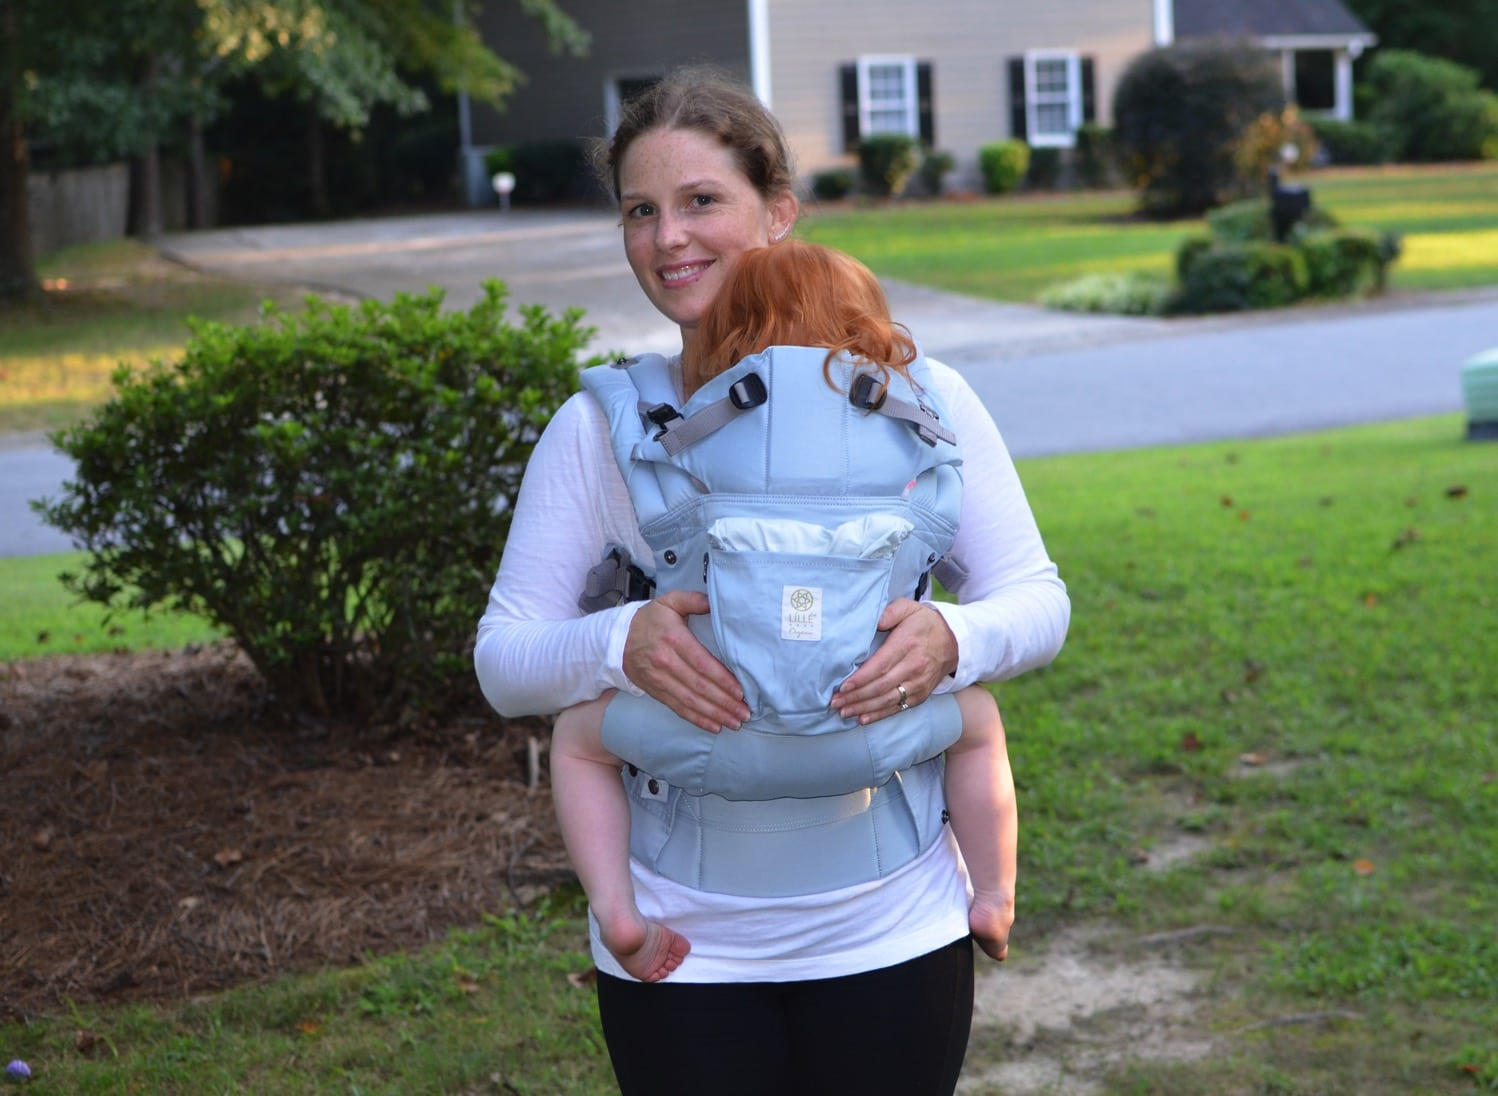 lillebaby complete organic Front carry front view